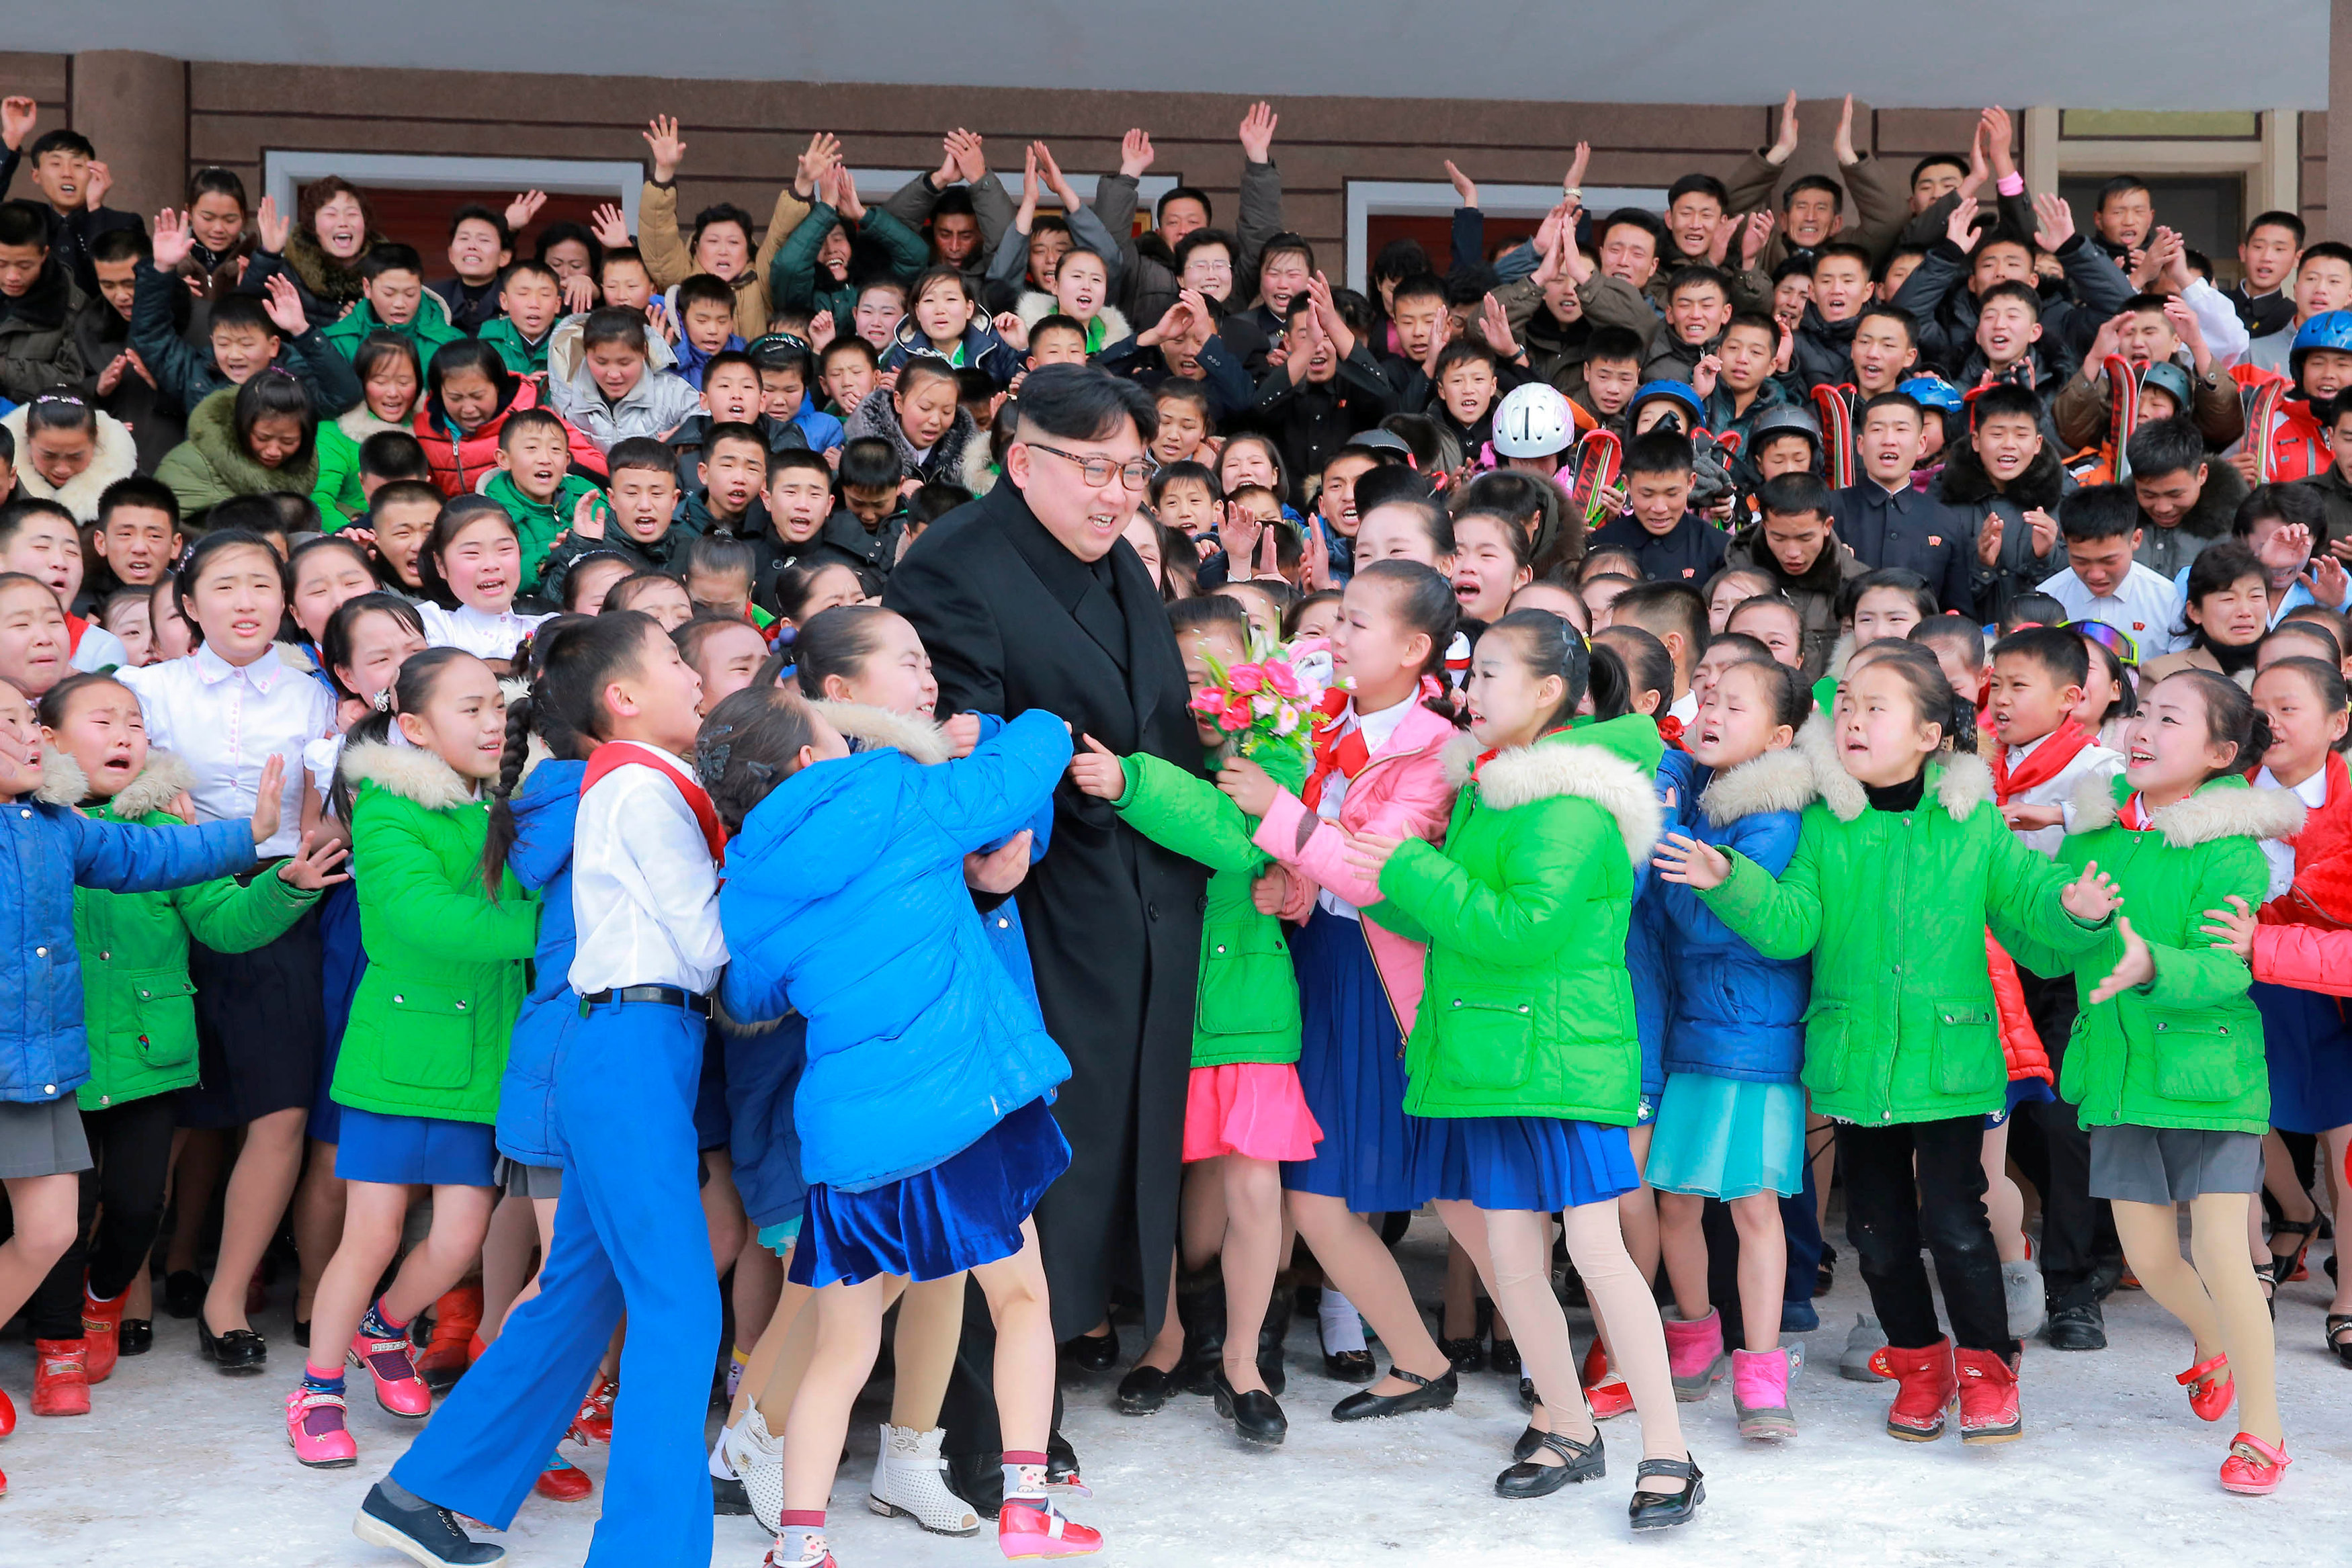 North Korean leader Kim Jong Un is hugged by children during his visit to Samjiyon County